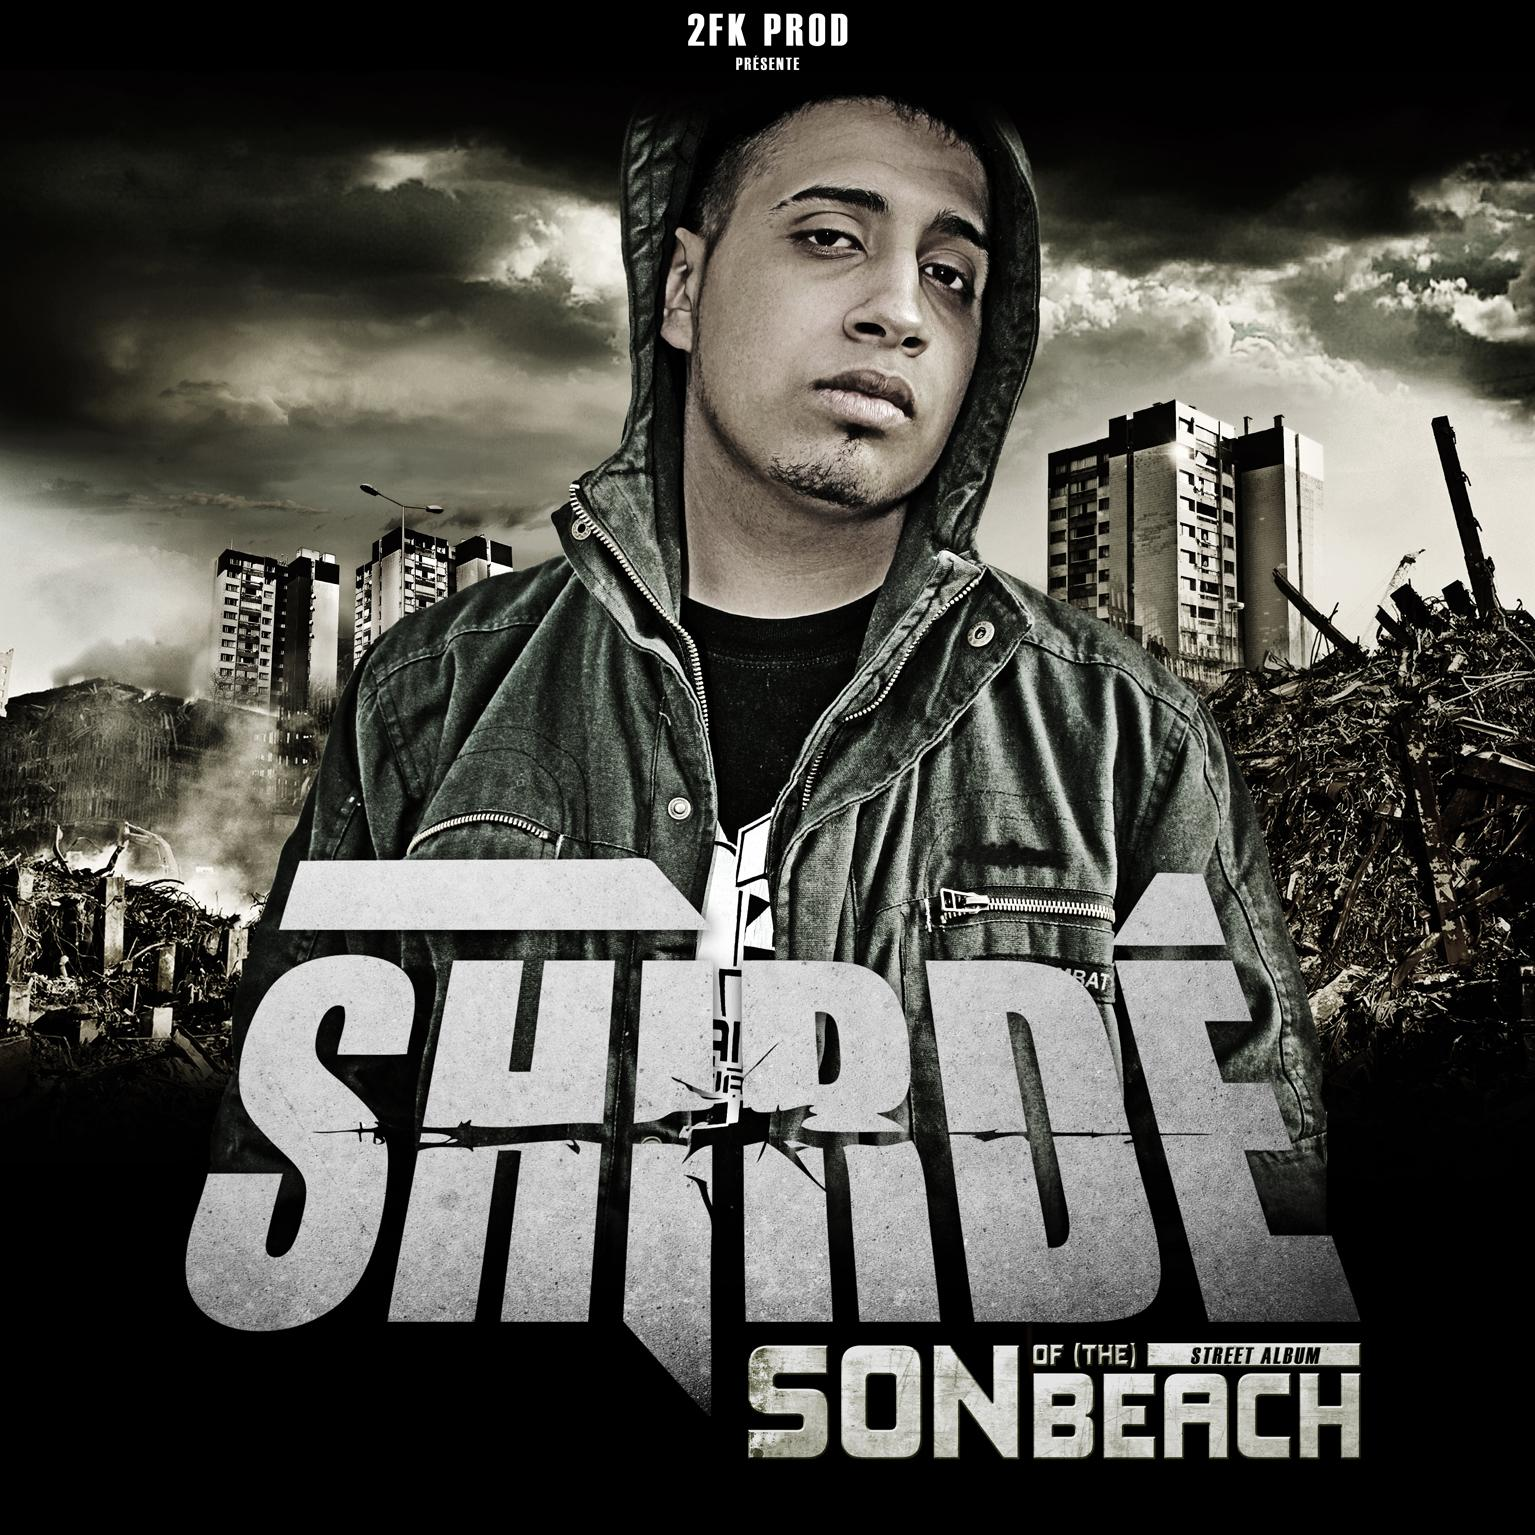 Shirde - SON OF THE BEACH